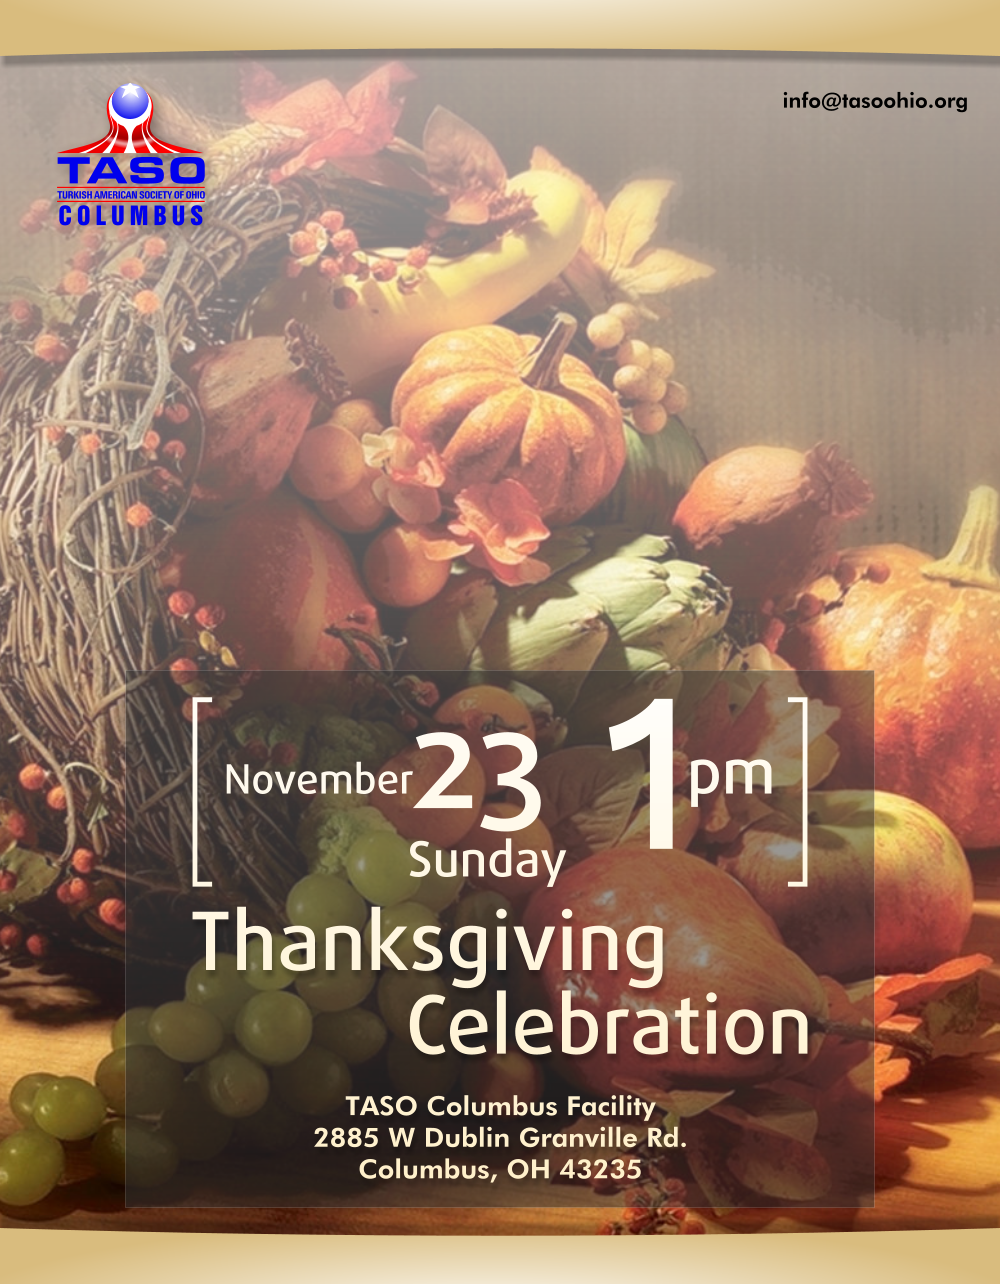 Thanksgiving 2014 TASO